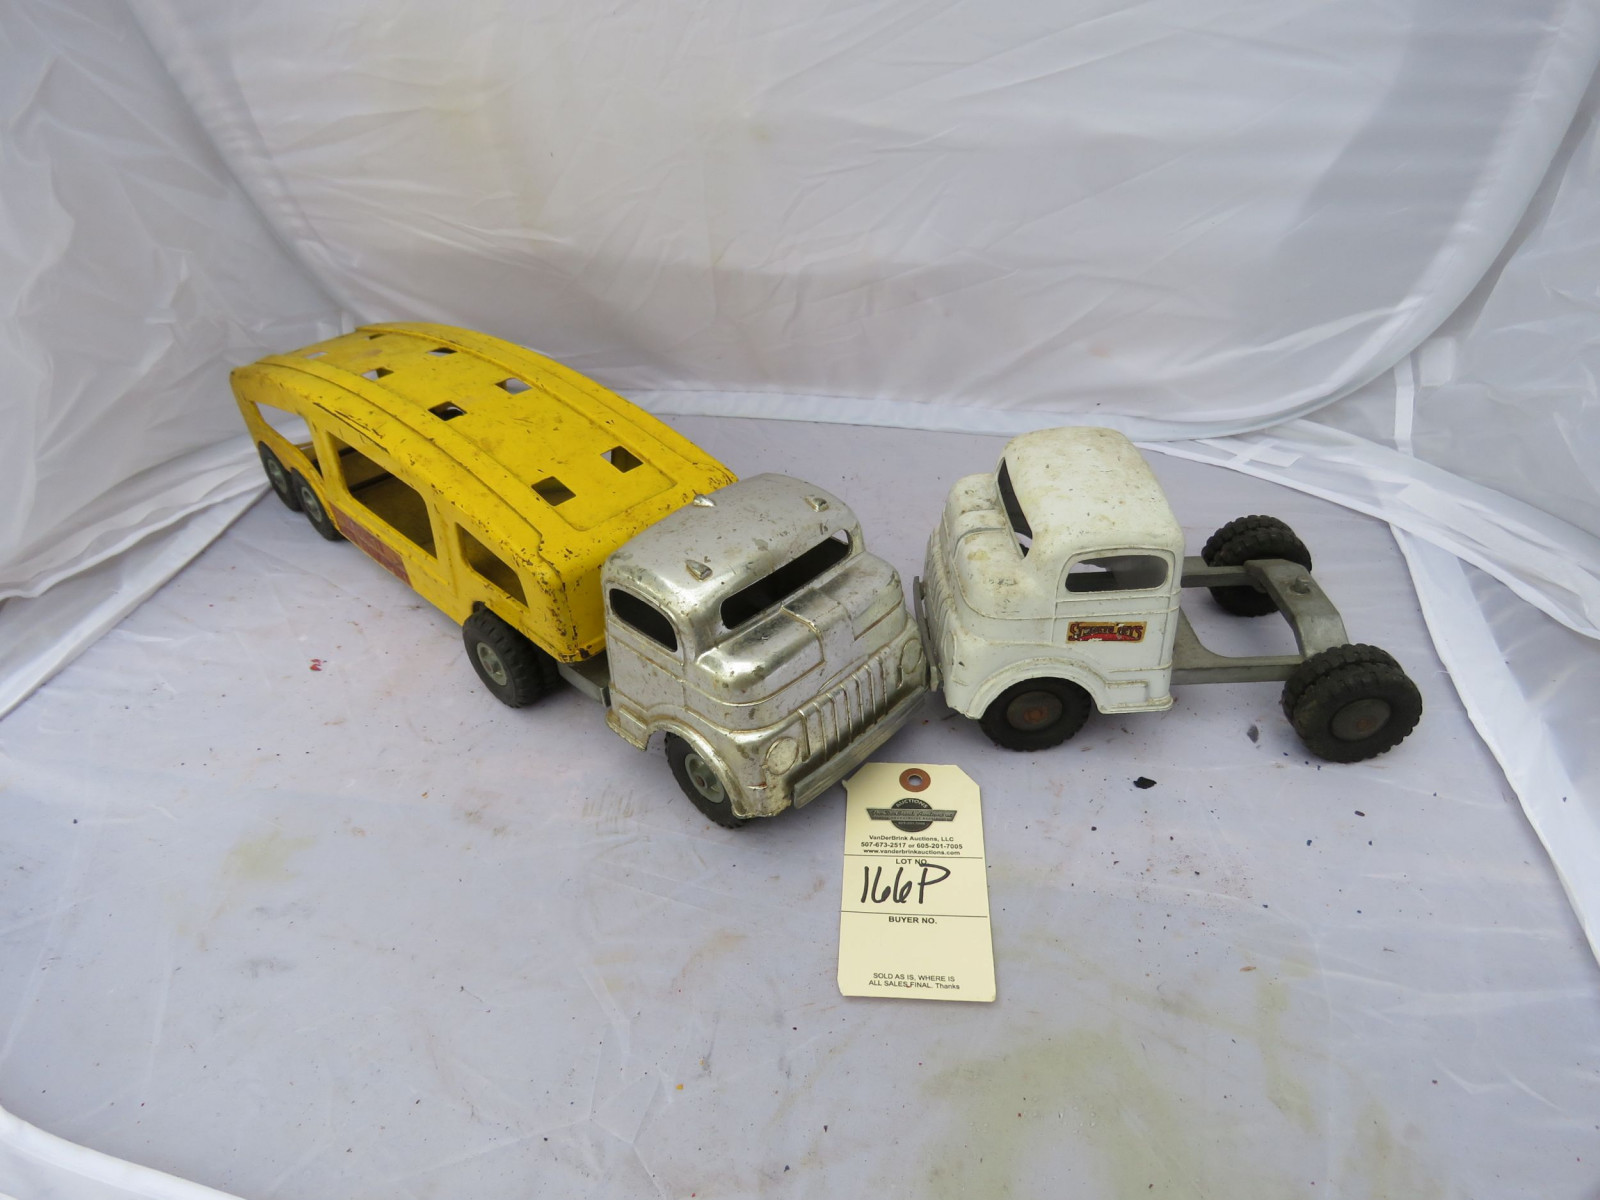 Vintage Tin Car Hauler and Truck - Image 1